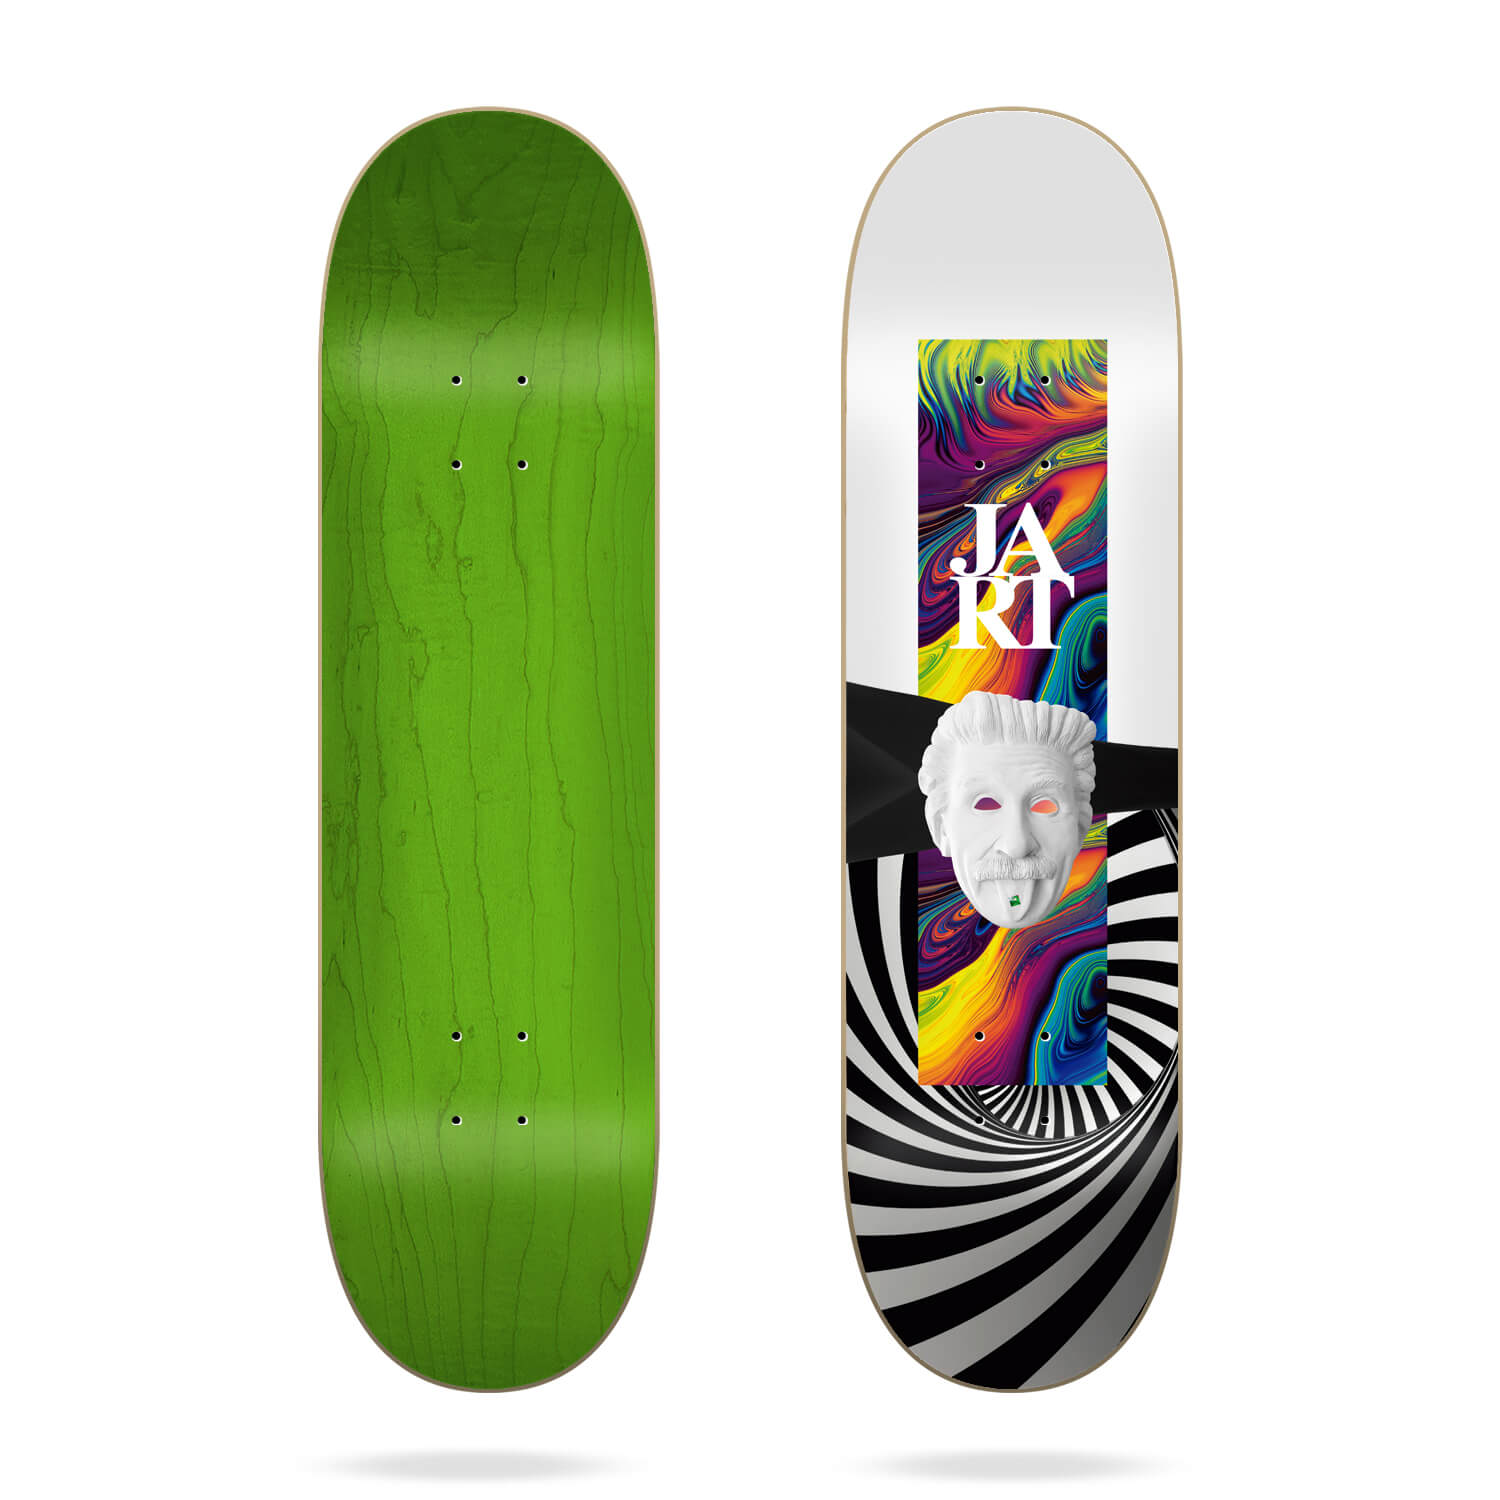 "Jart Abstraction 8.375"" deck"